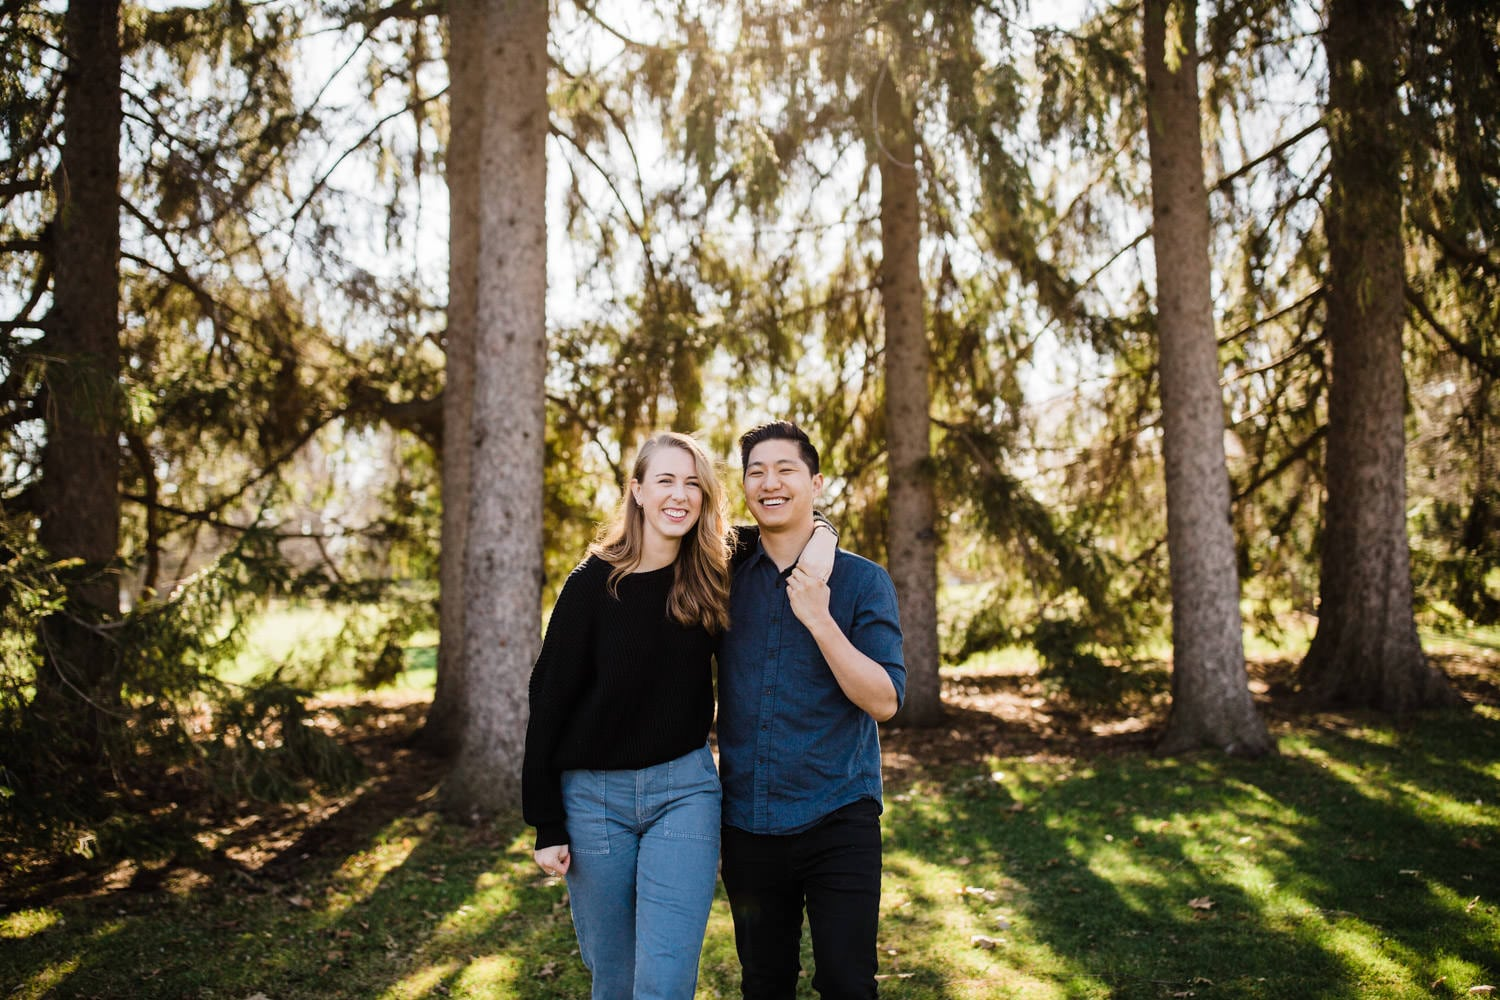 couple laugh together as sun shines through trees behind them - ottawa experimental farm engagement